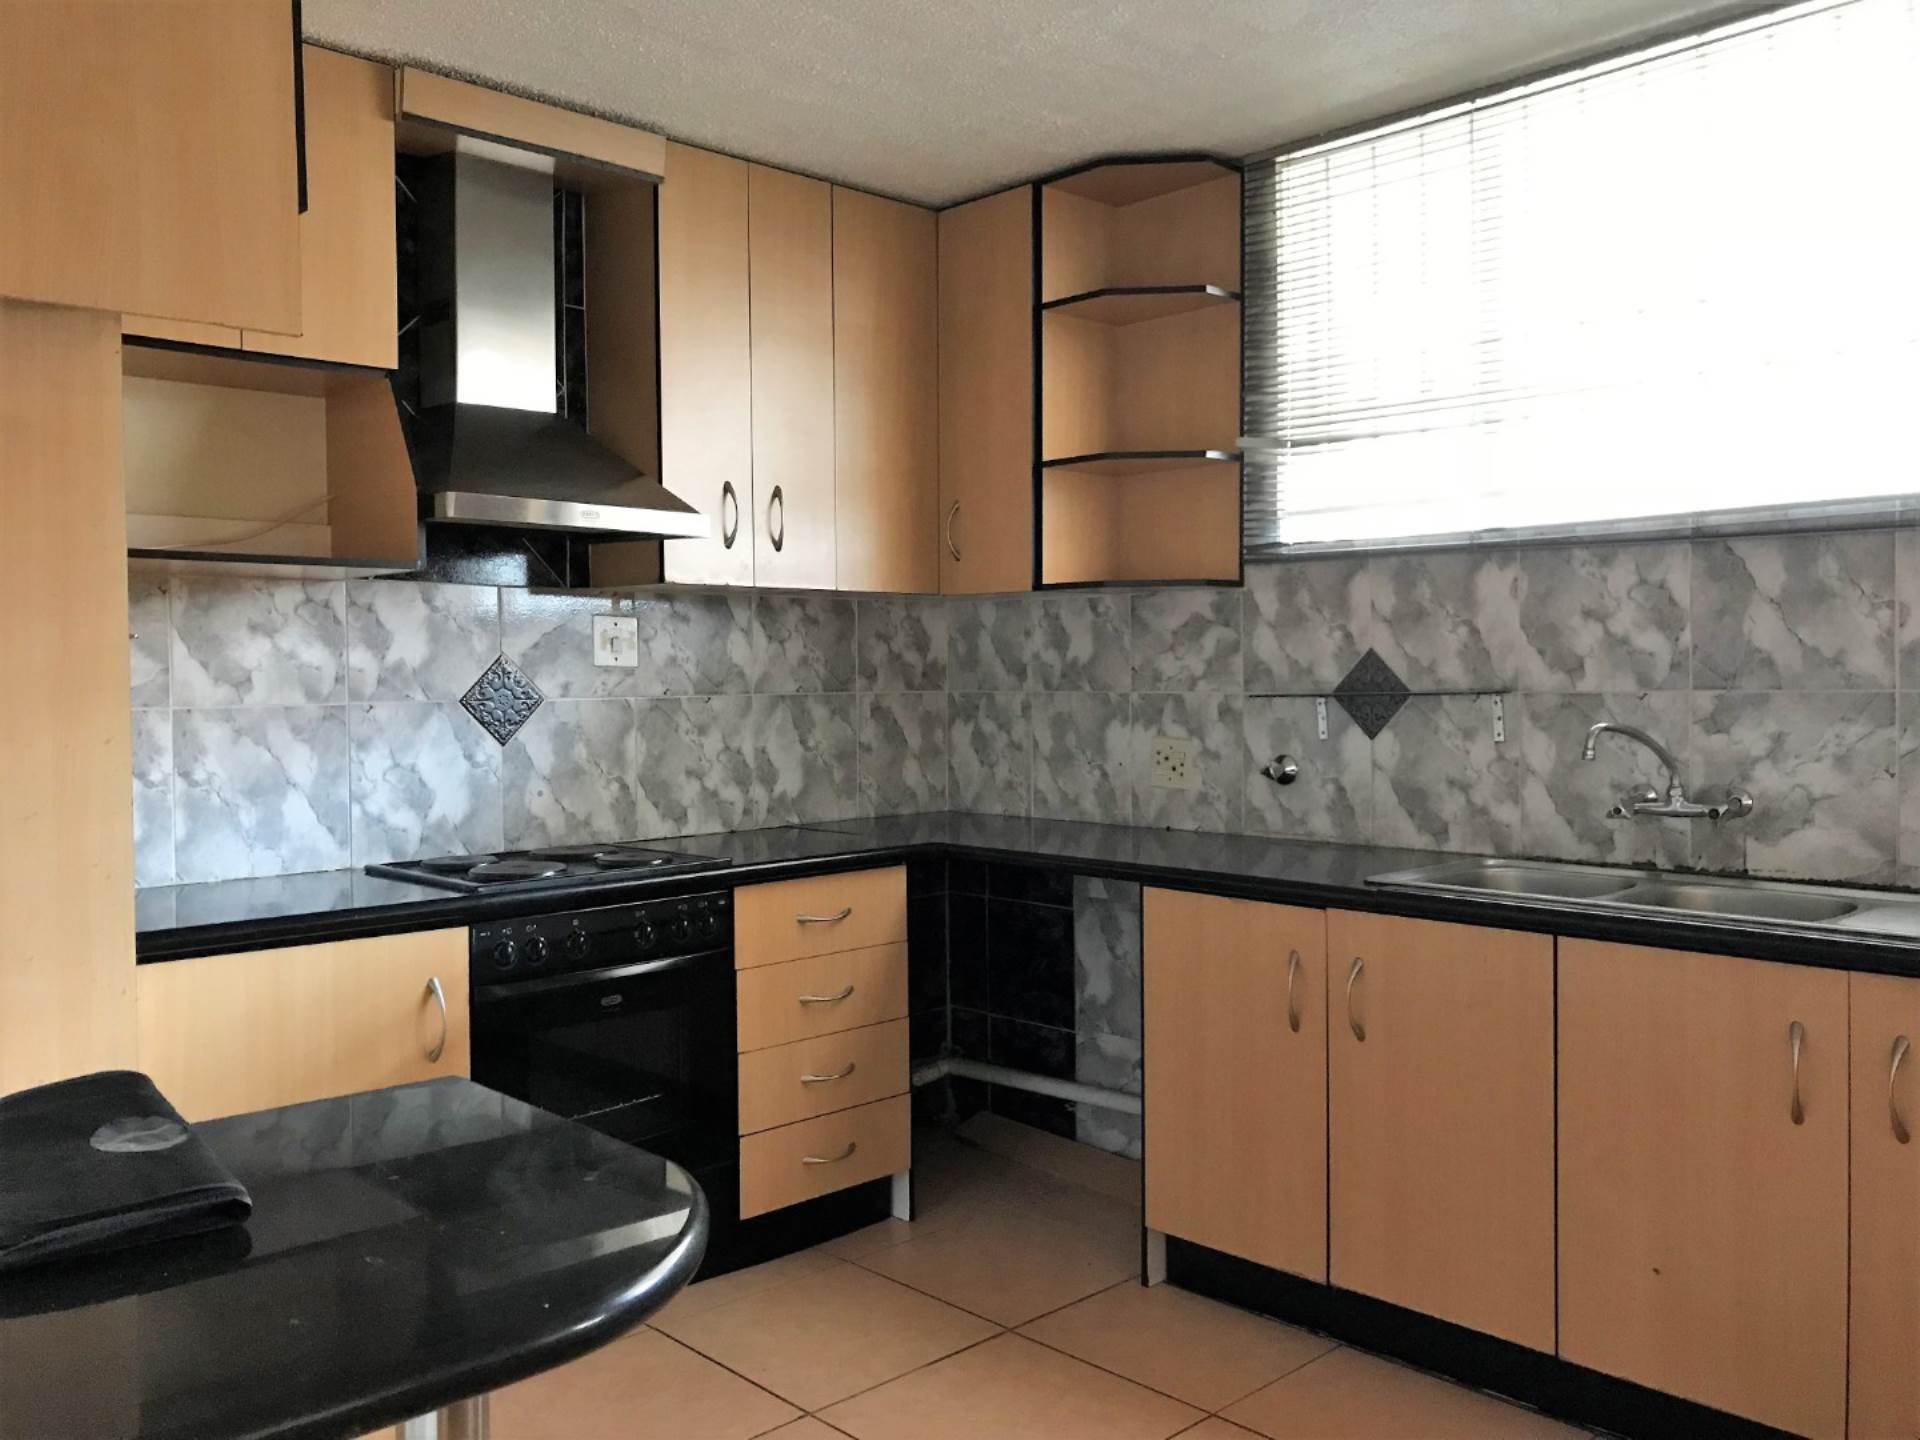 2 BedroomApartment To Rent In Ferndale